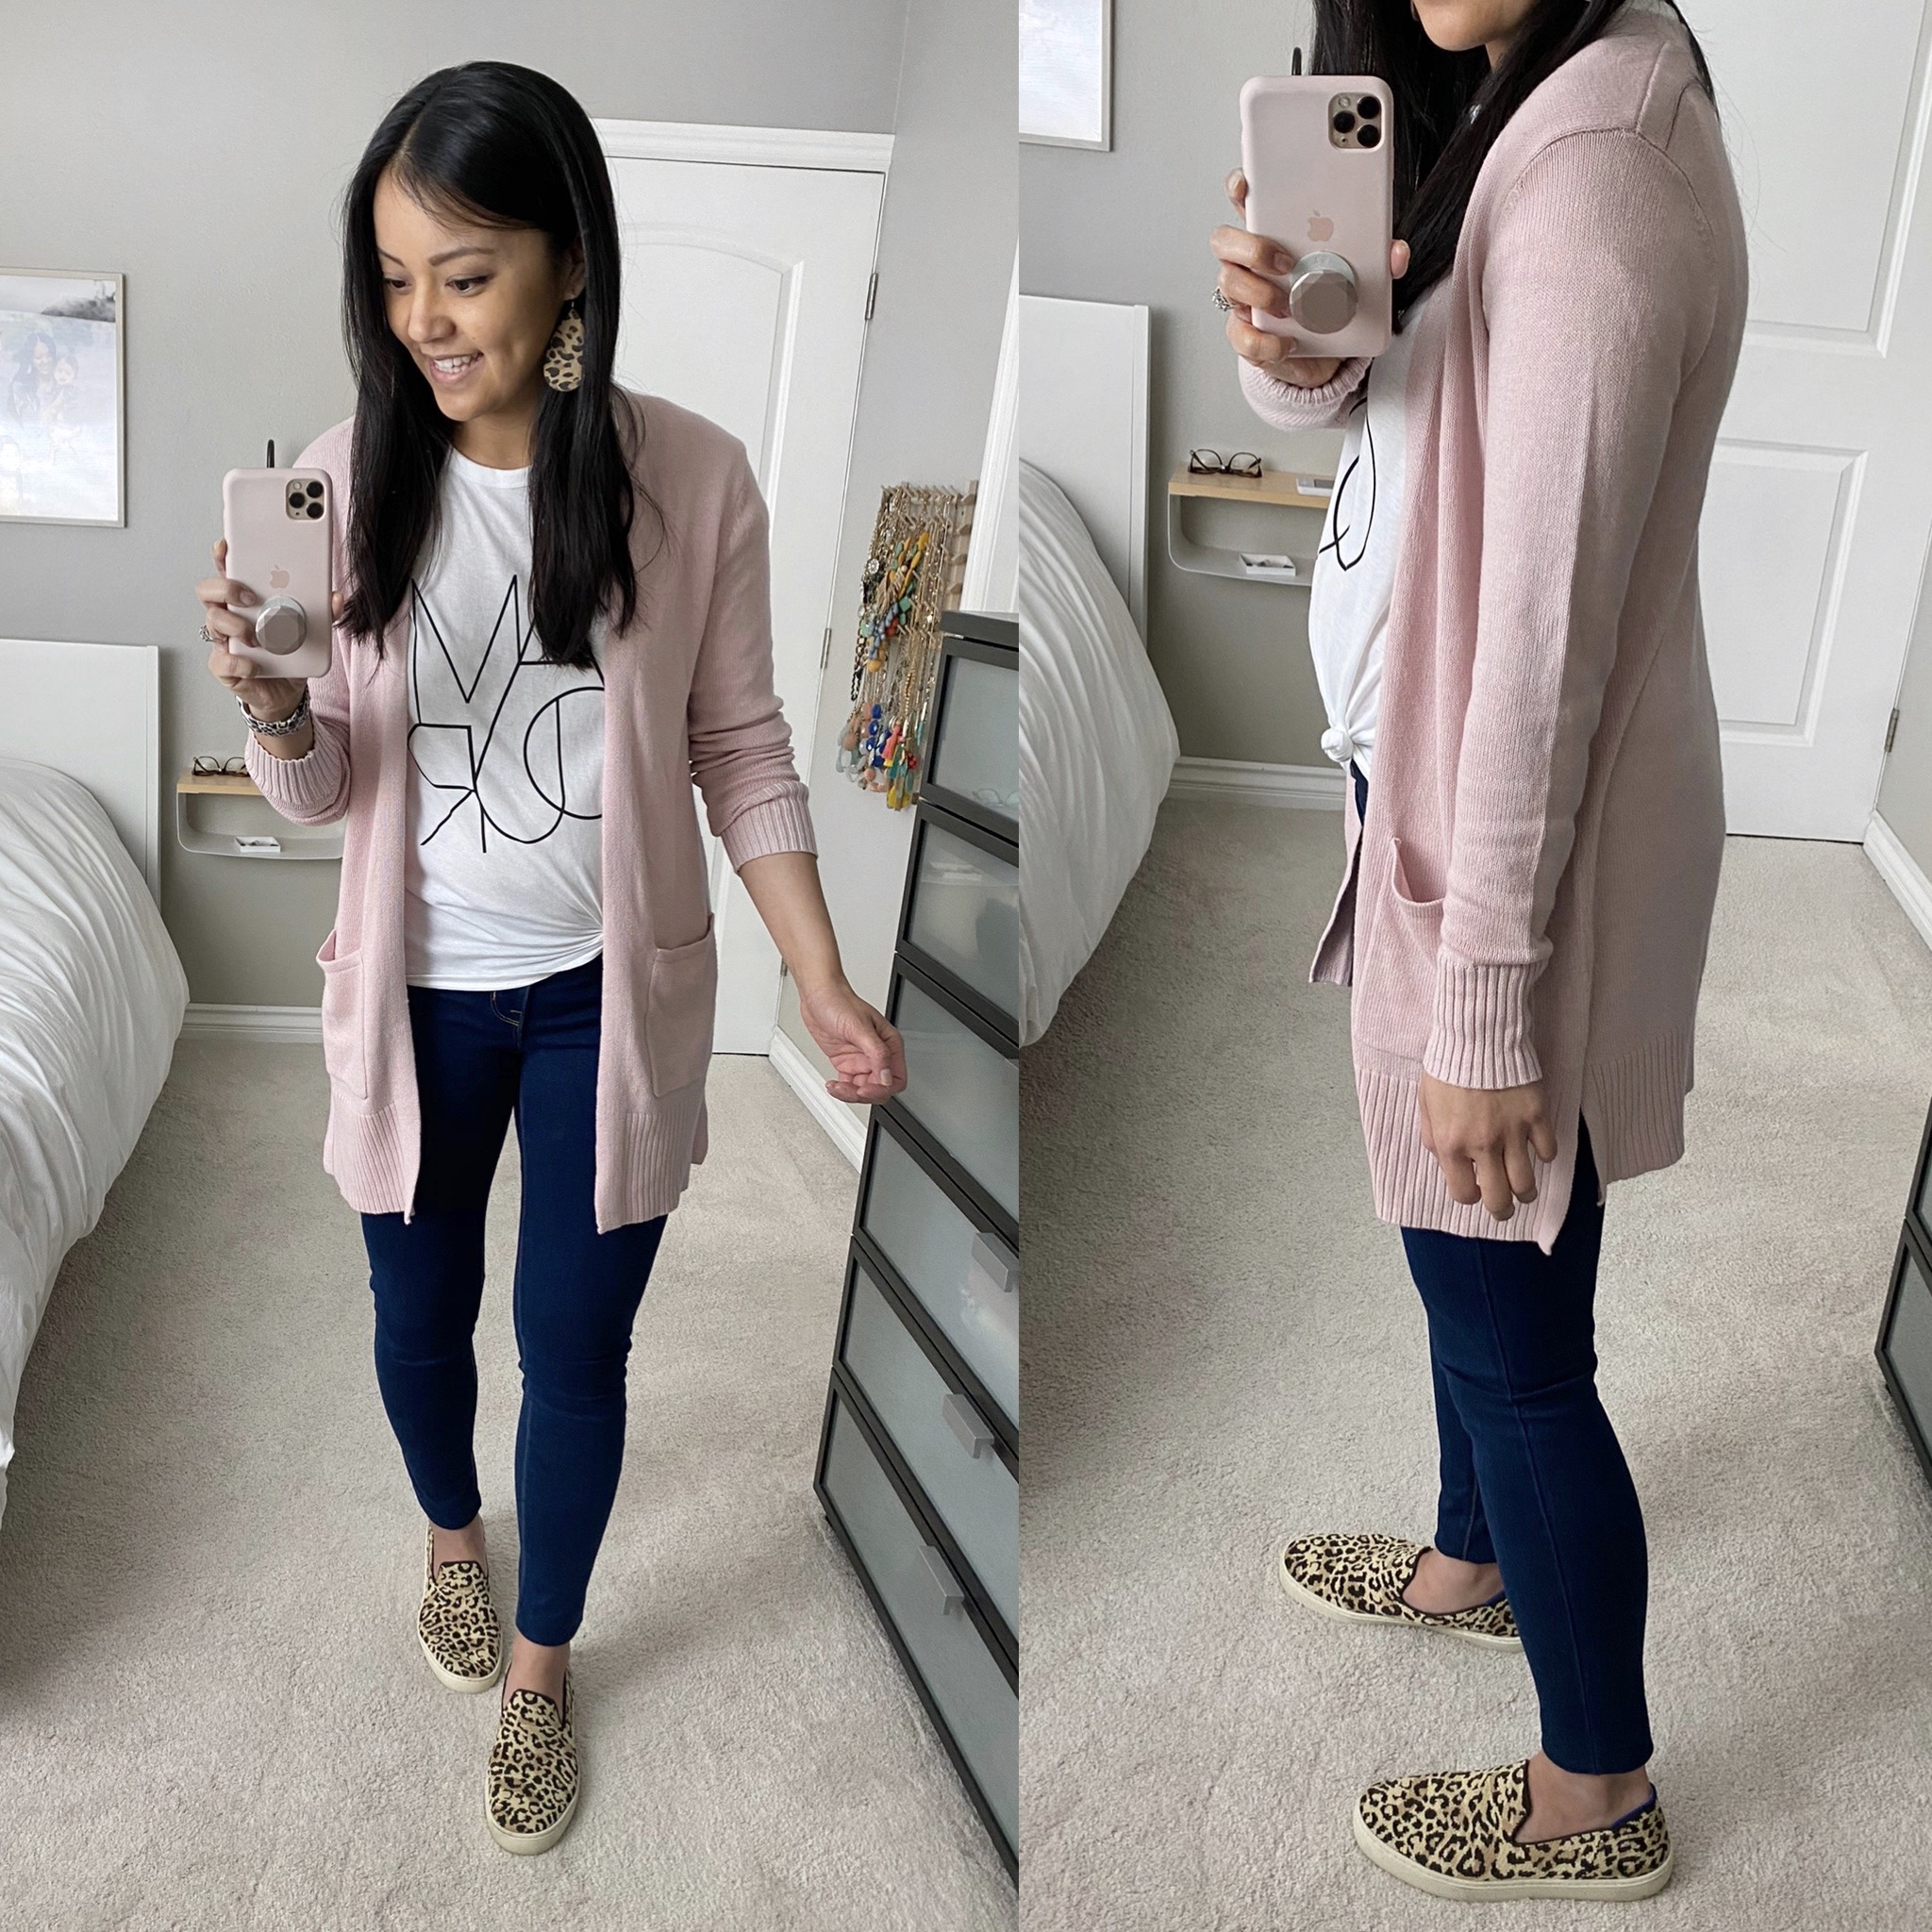 Casual Spring Outfit: white graphic tee + long blush pink cardigan + dark skinny jeans + leopard slip-on sneakers + leopard leather earrings